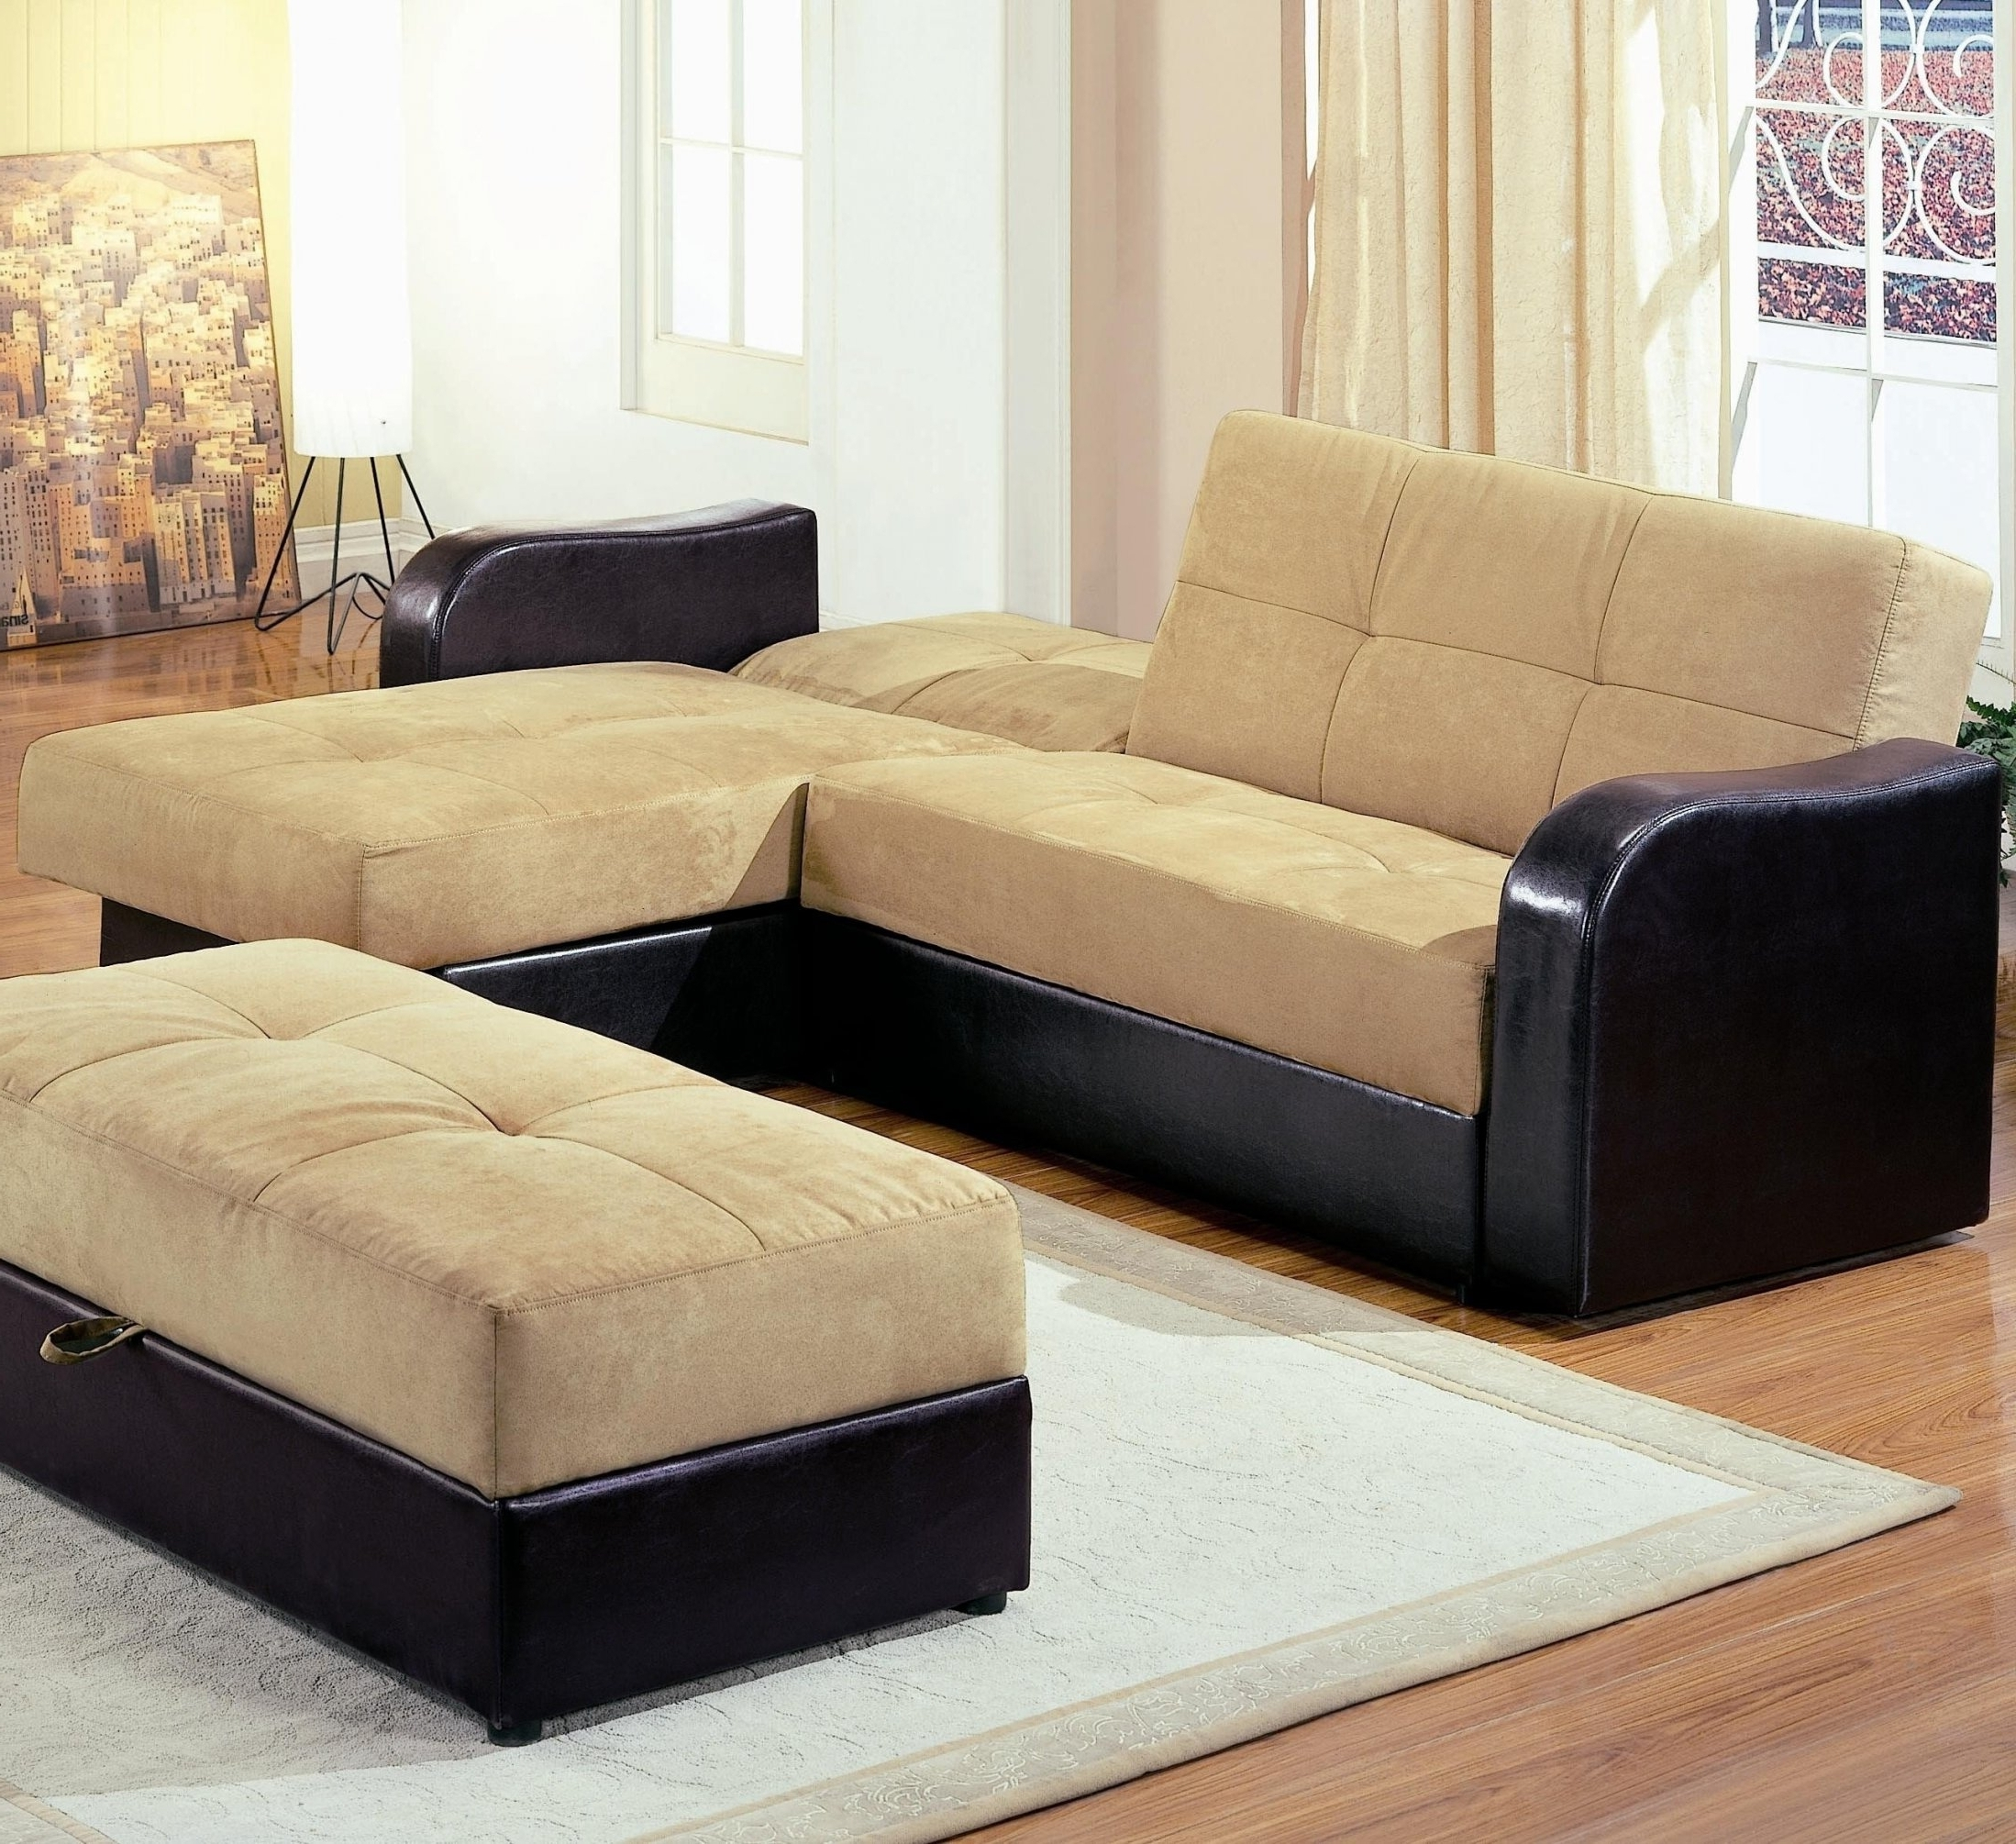 Sectional Sleeper Sofa With Ottoman with Current Sectional Sleeper Sofas With Ottoman